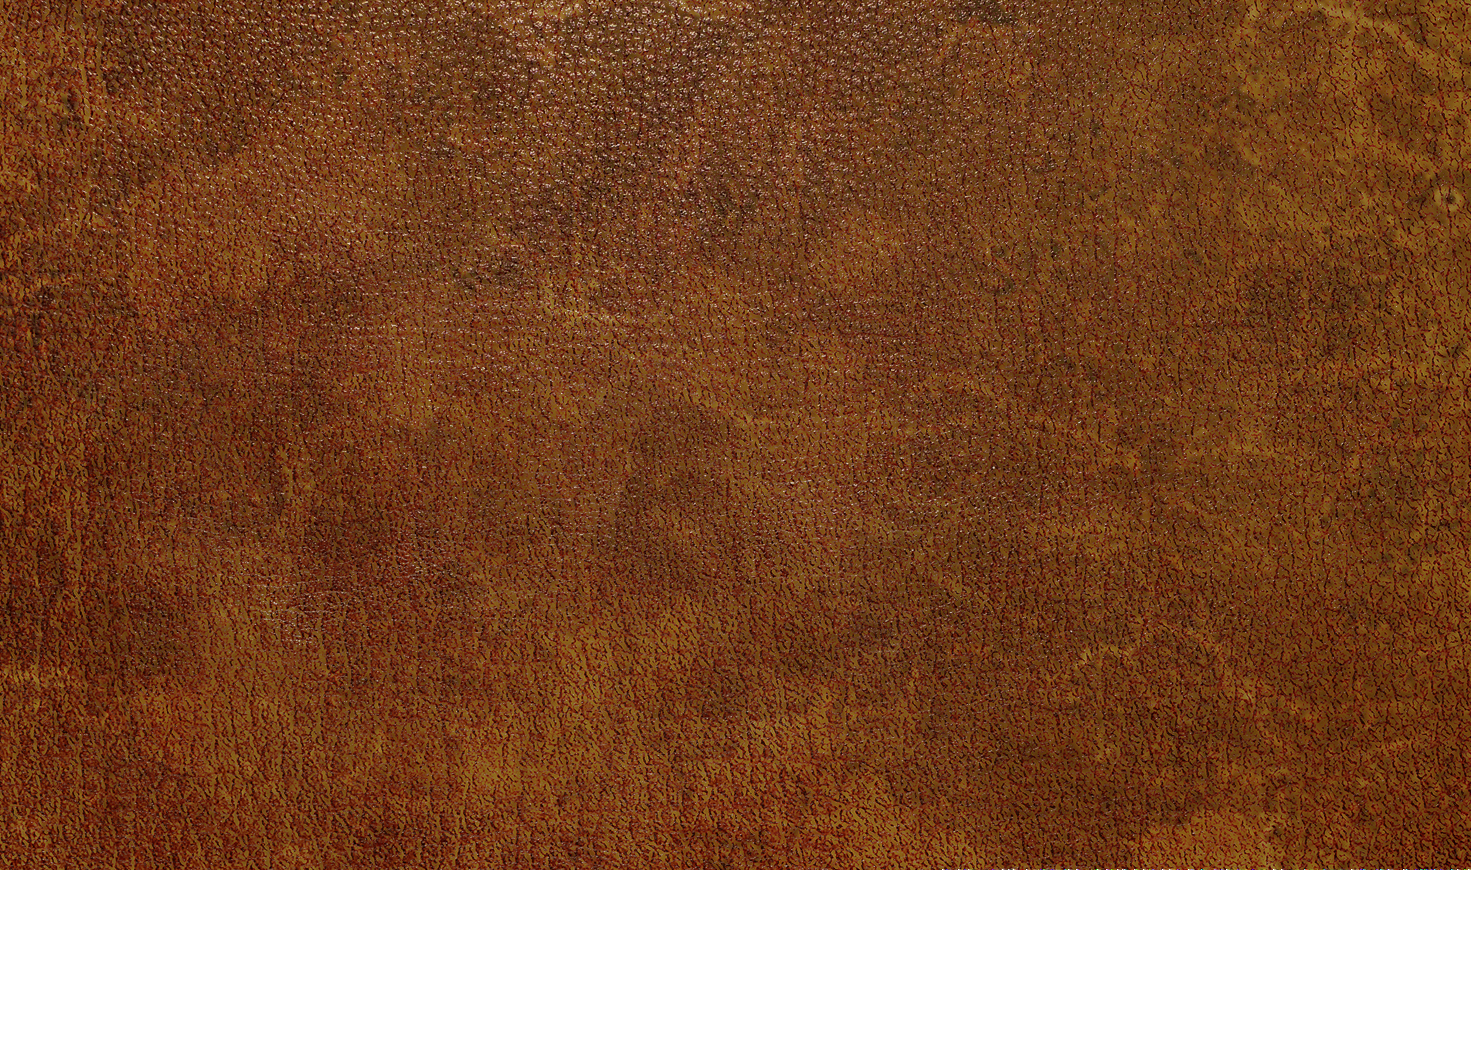 the gallery for gt light brown background texture